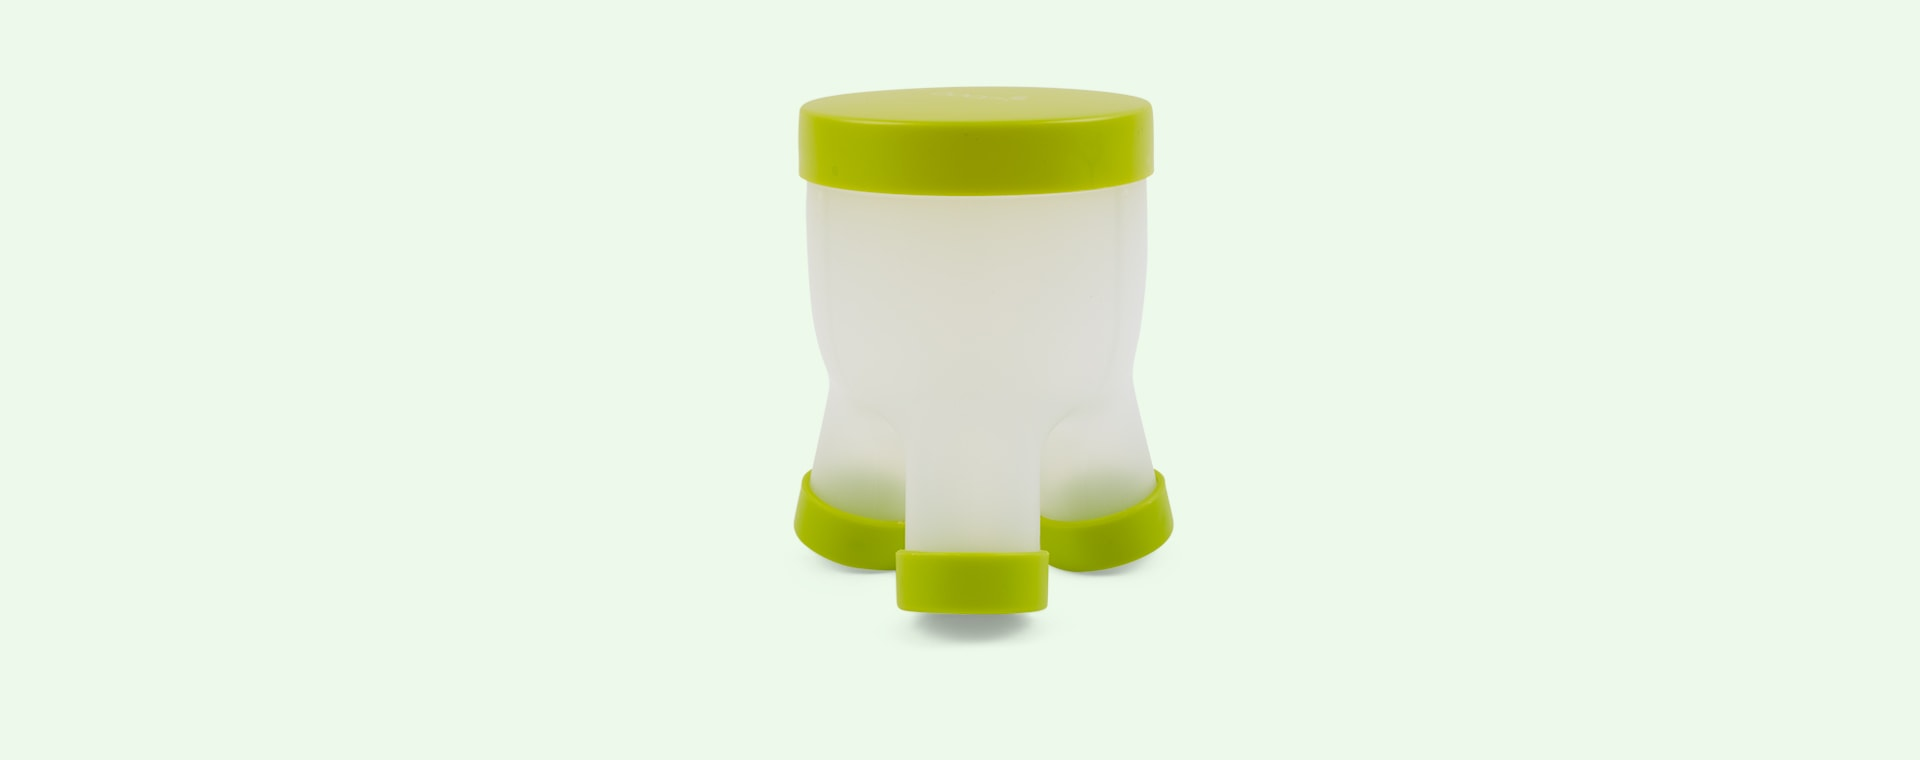 Green Boon Tripod Formula Dispenser